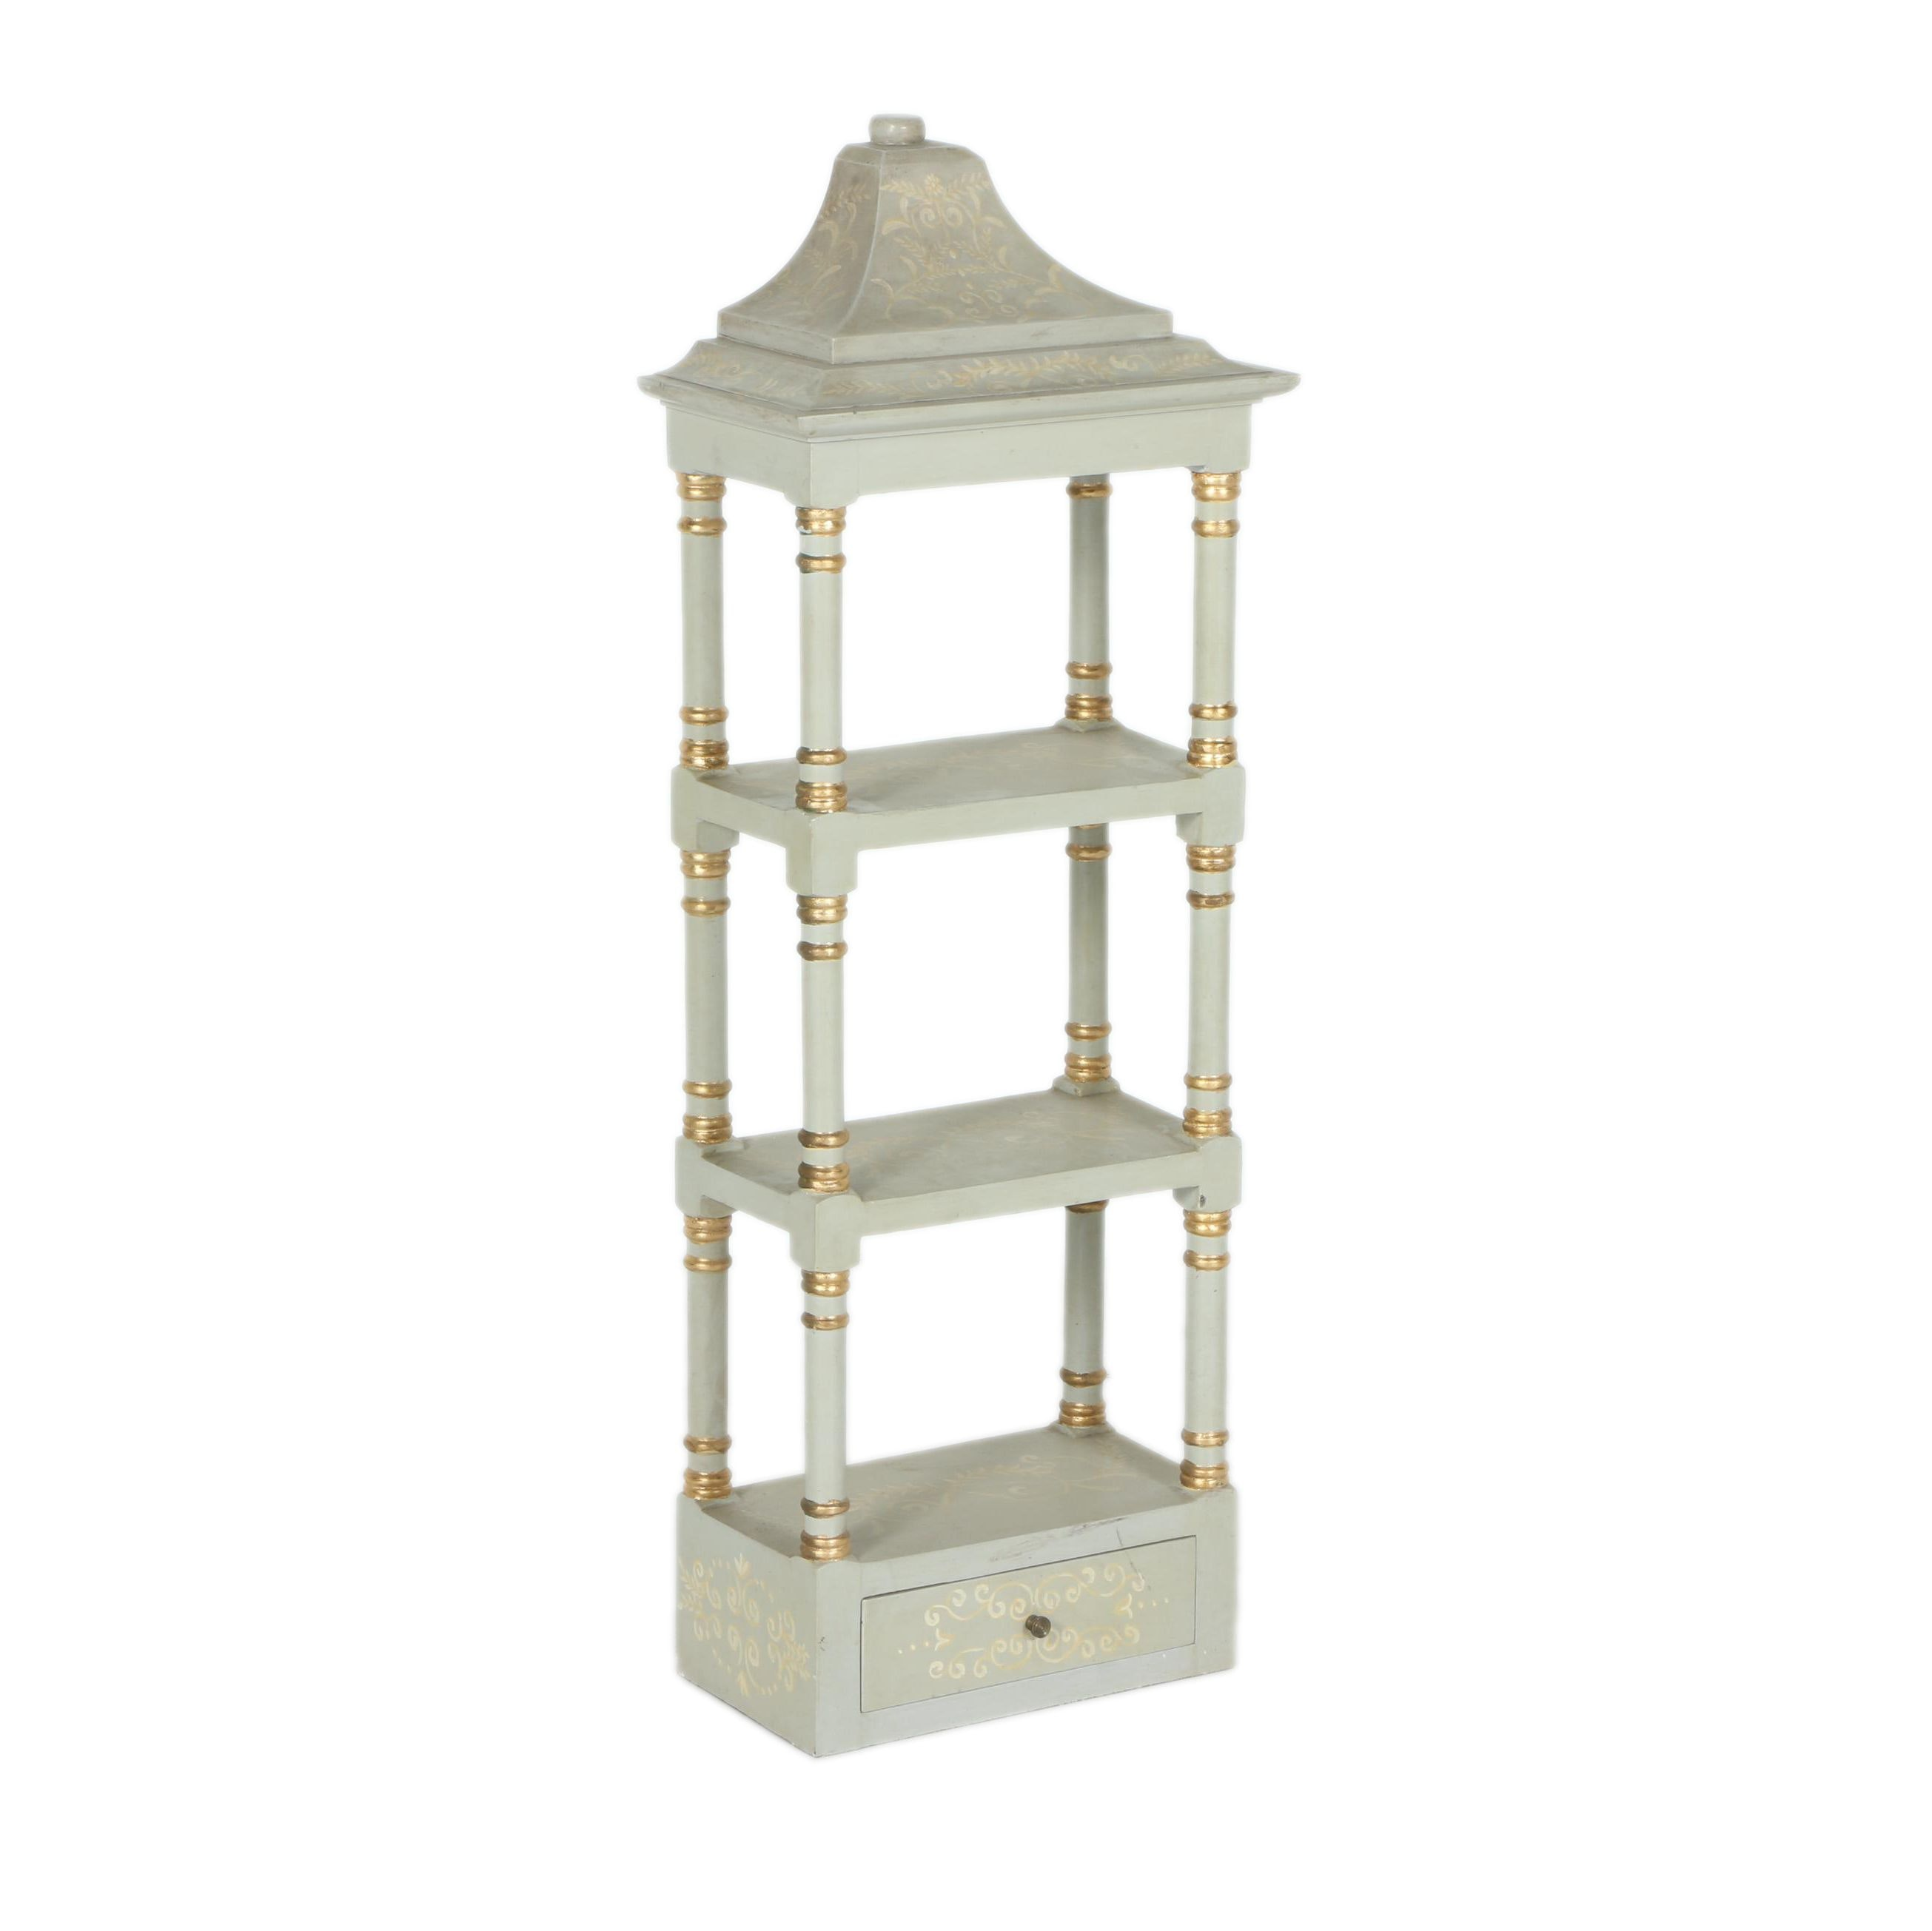 Gilded and White Wooden Wall Shelf Unit